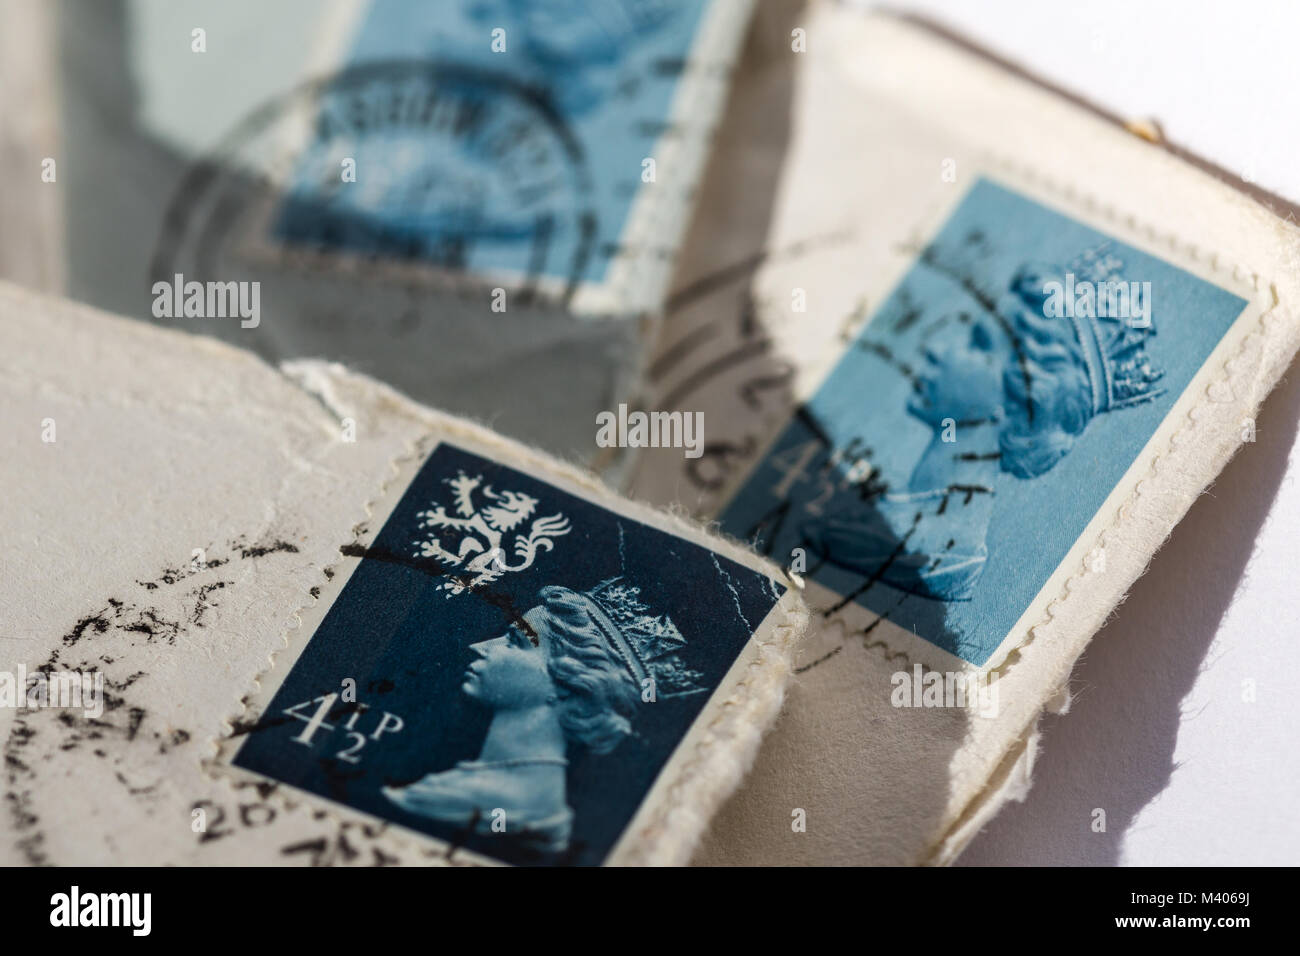 old UK postage stamps - Stock Image